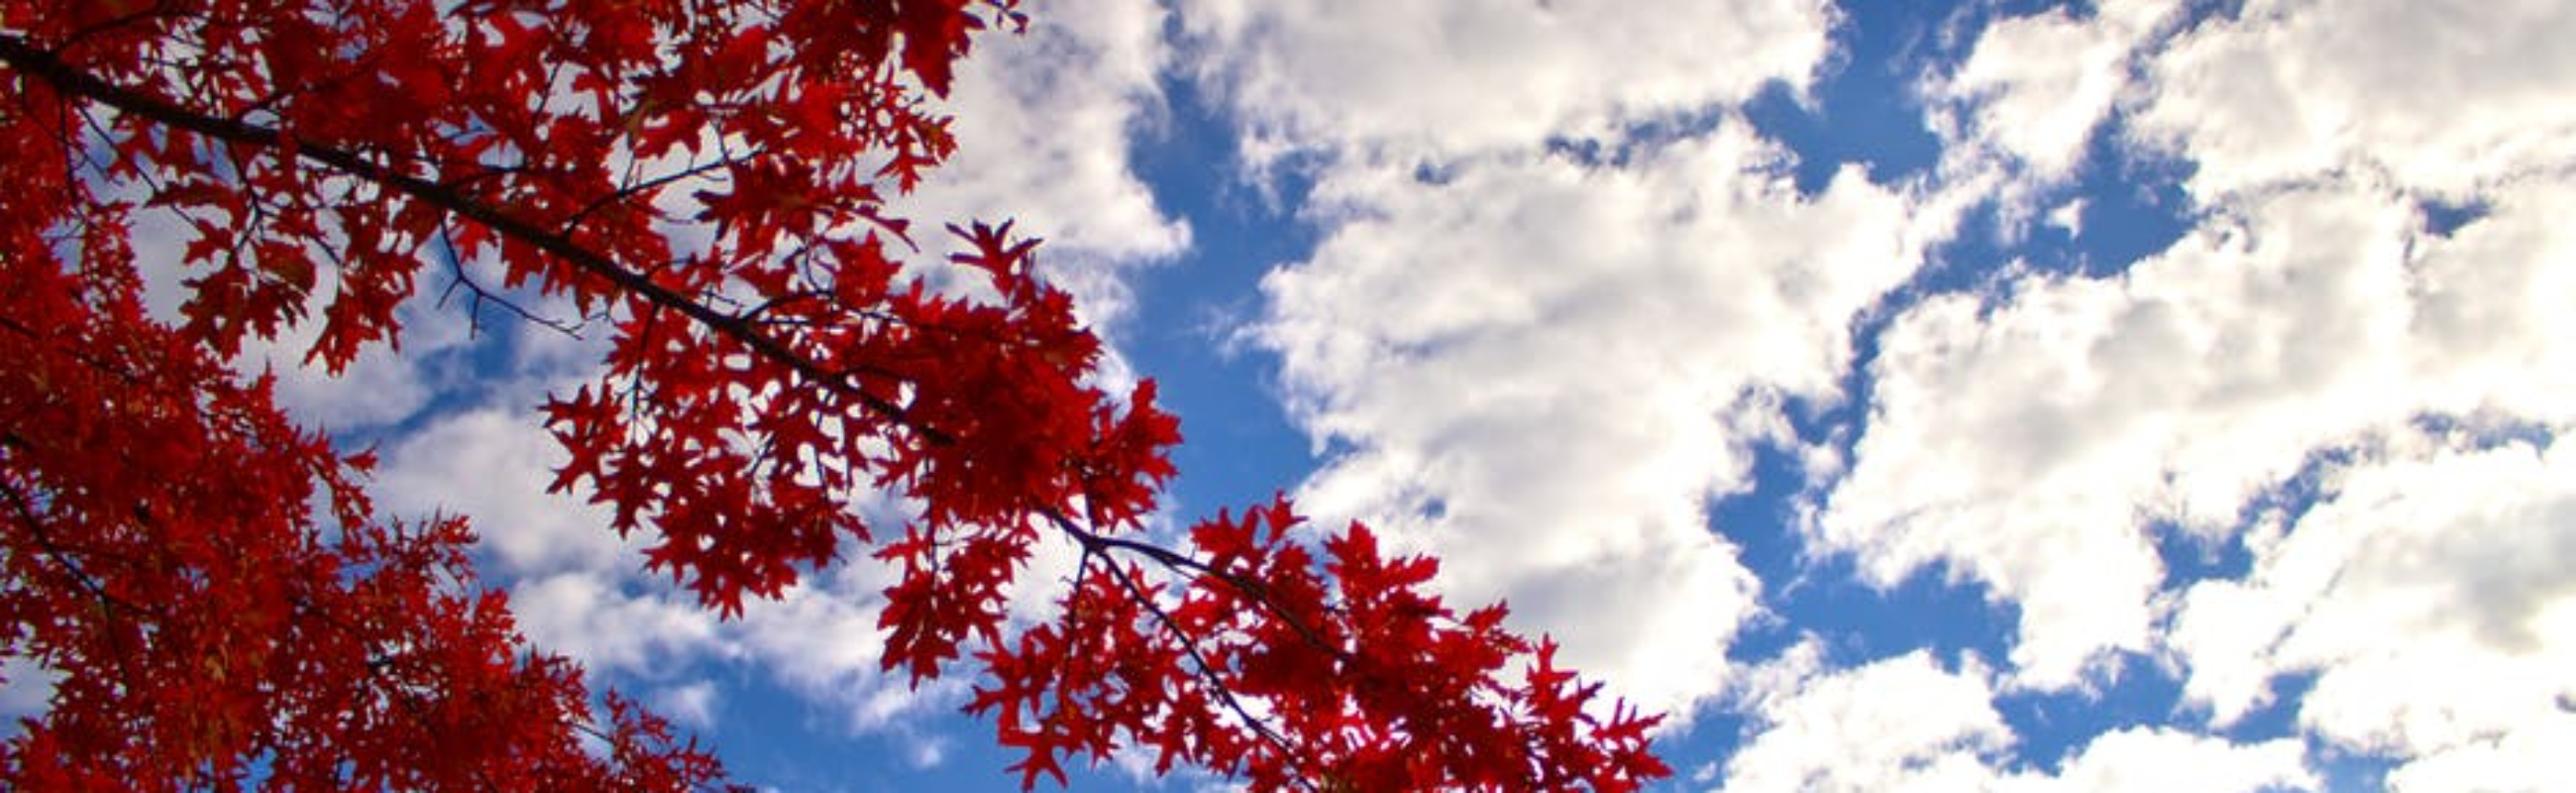 Sky with red leaves